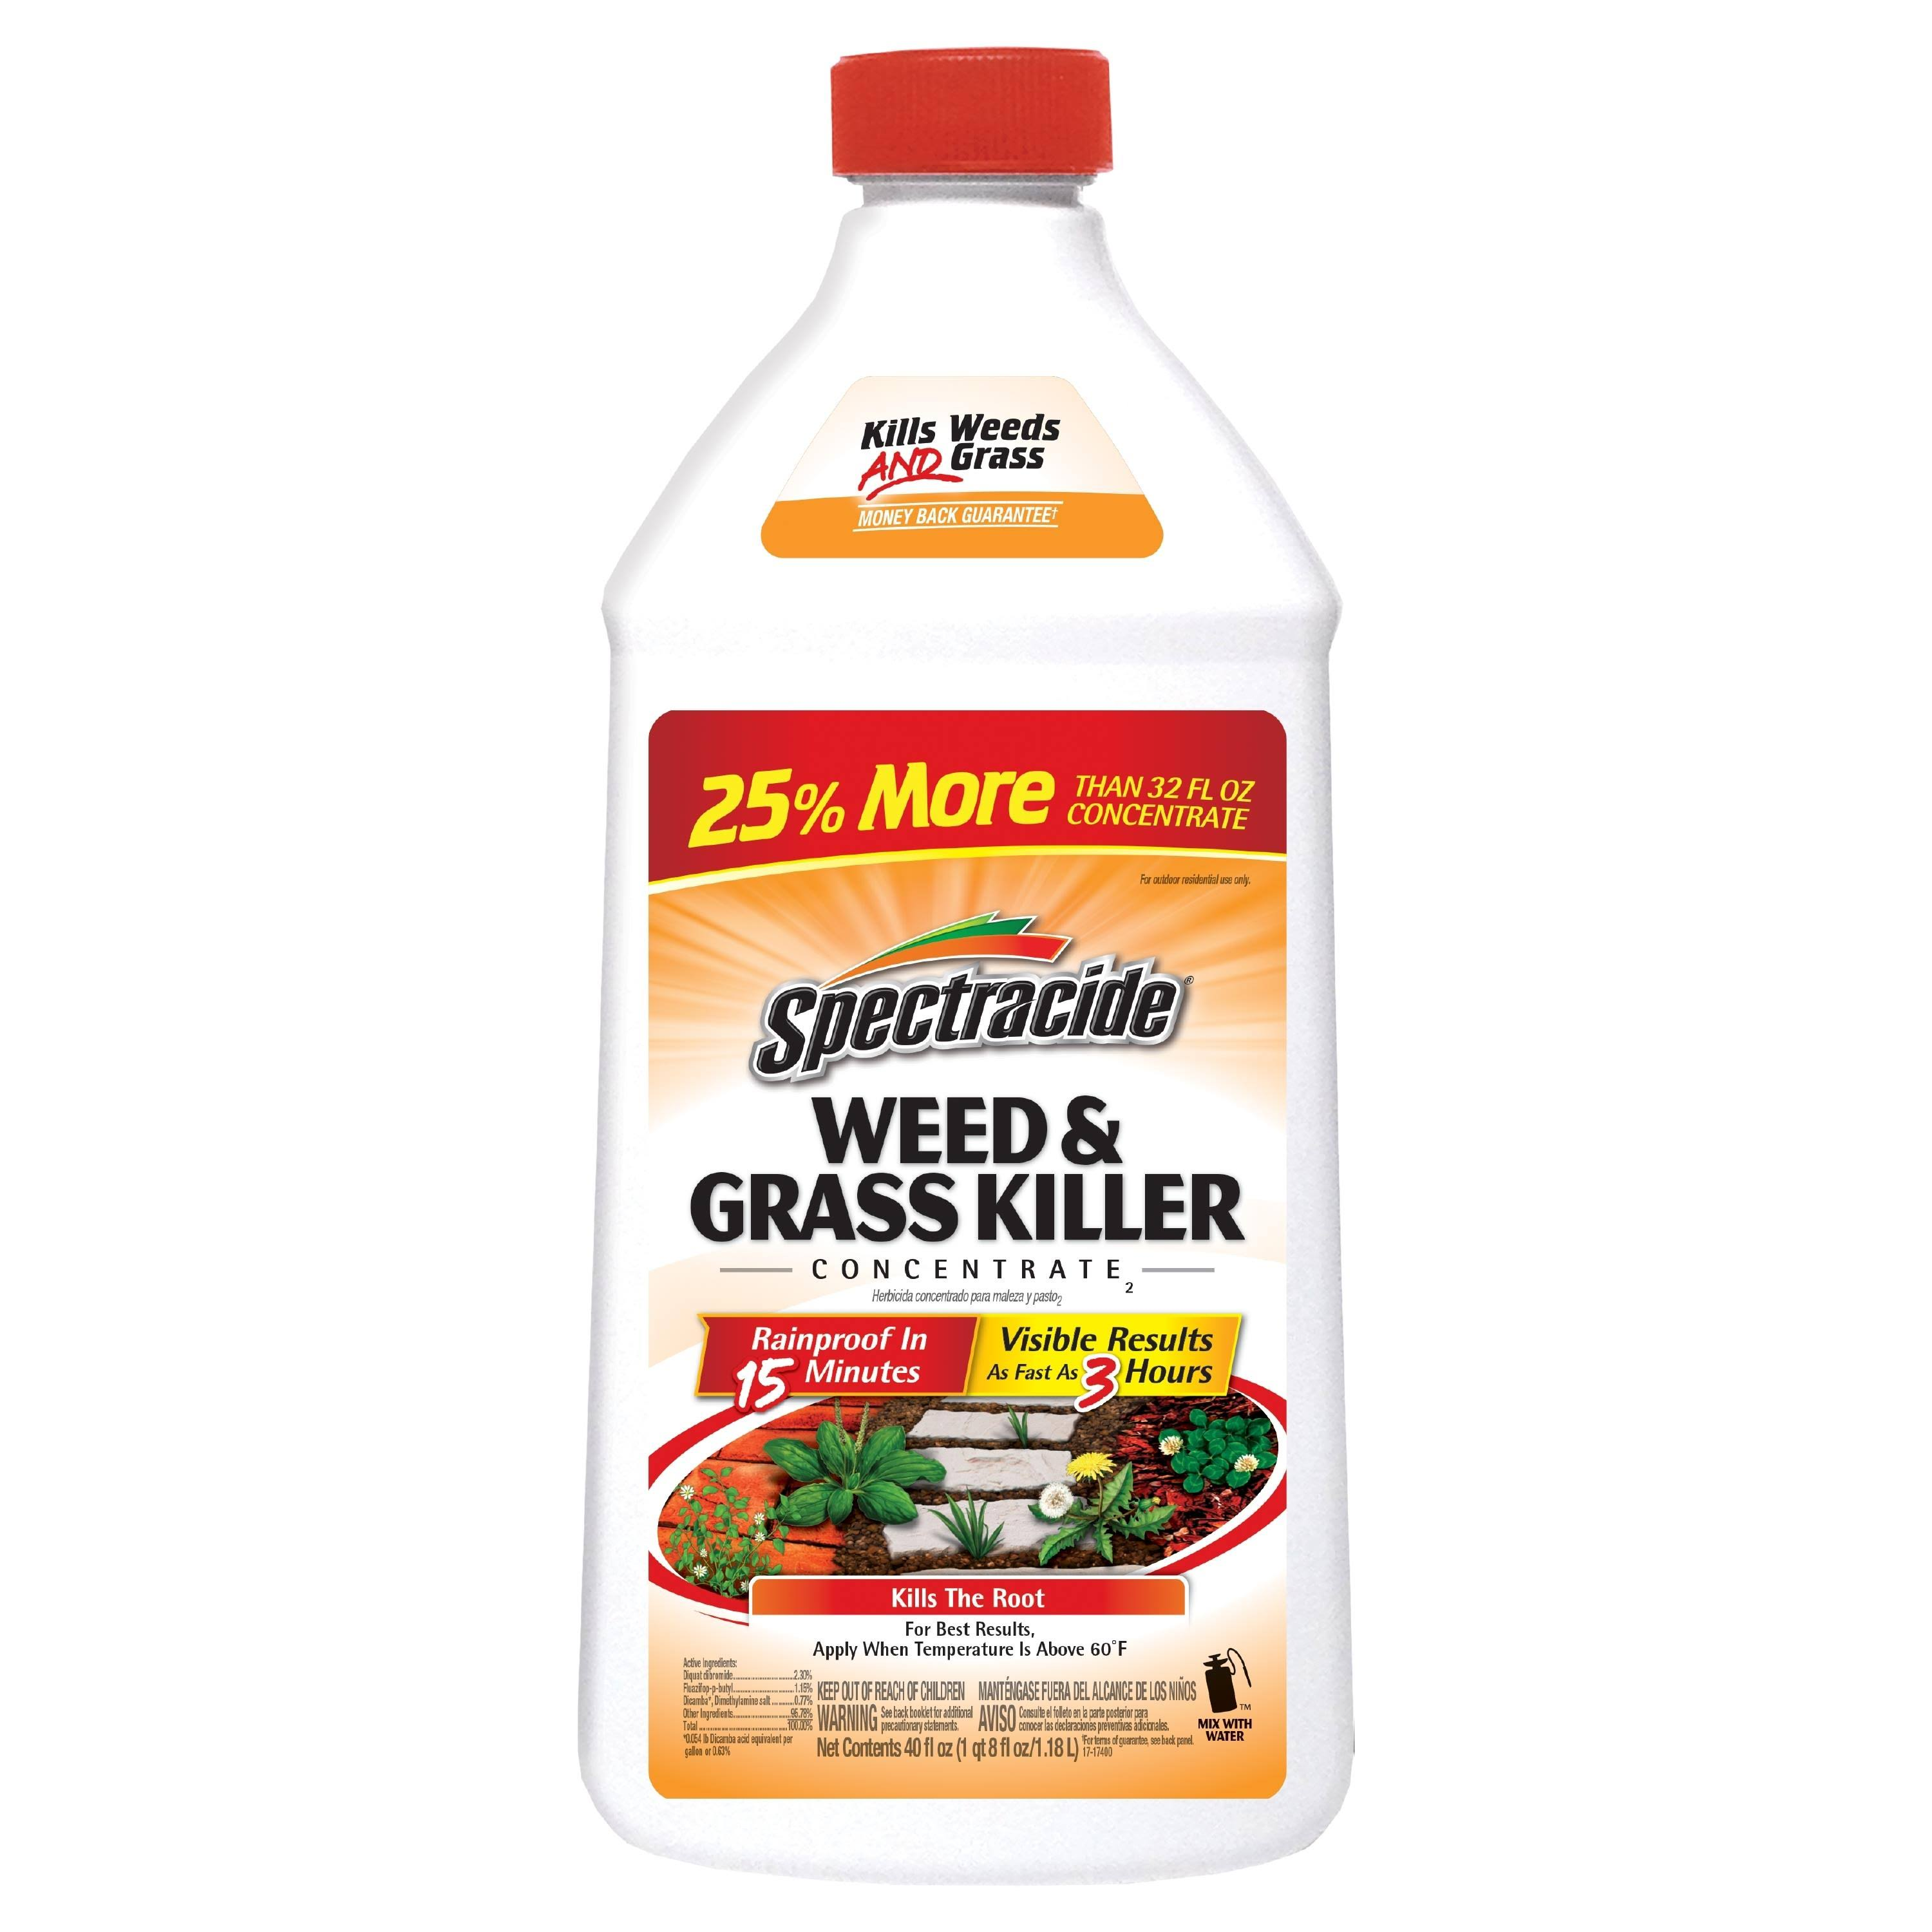 Spectracide Weed & Grass Killer Concentrate - 40oz